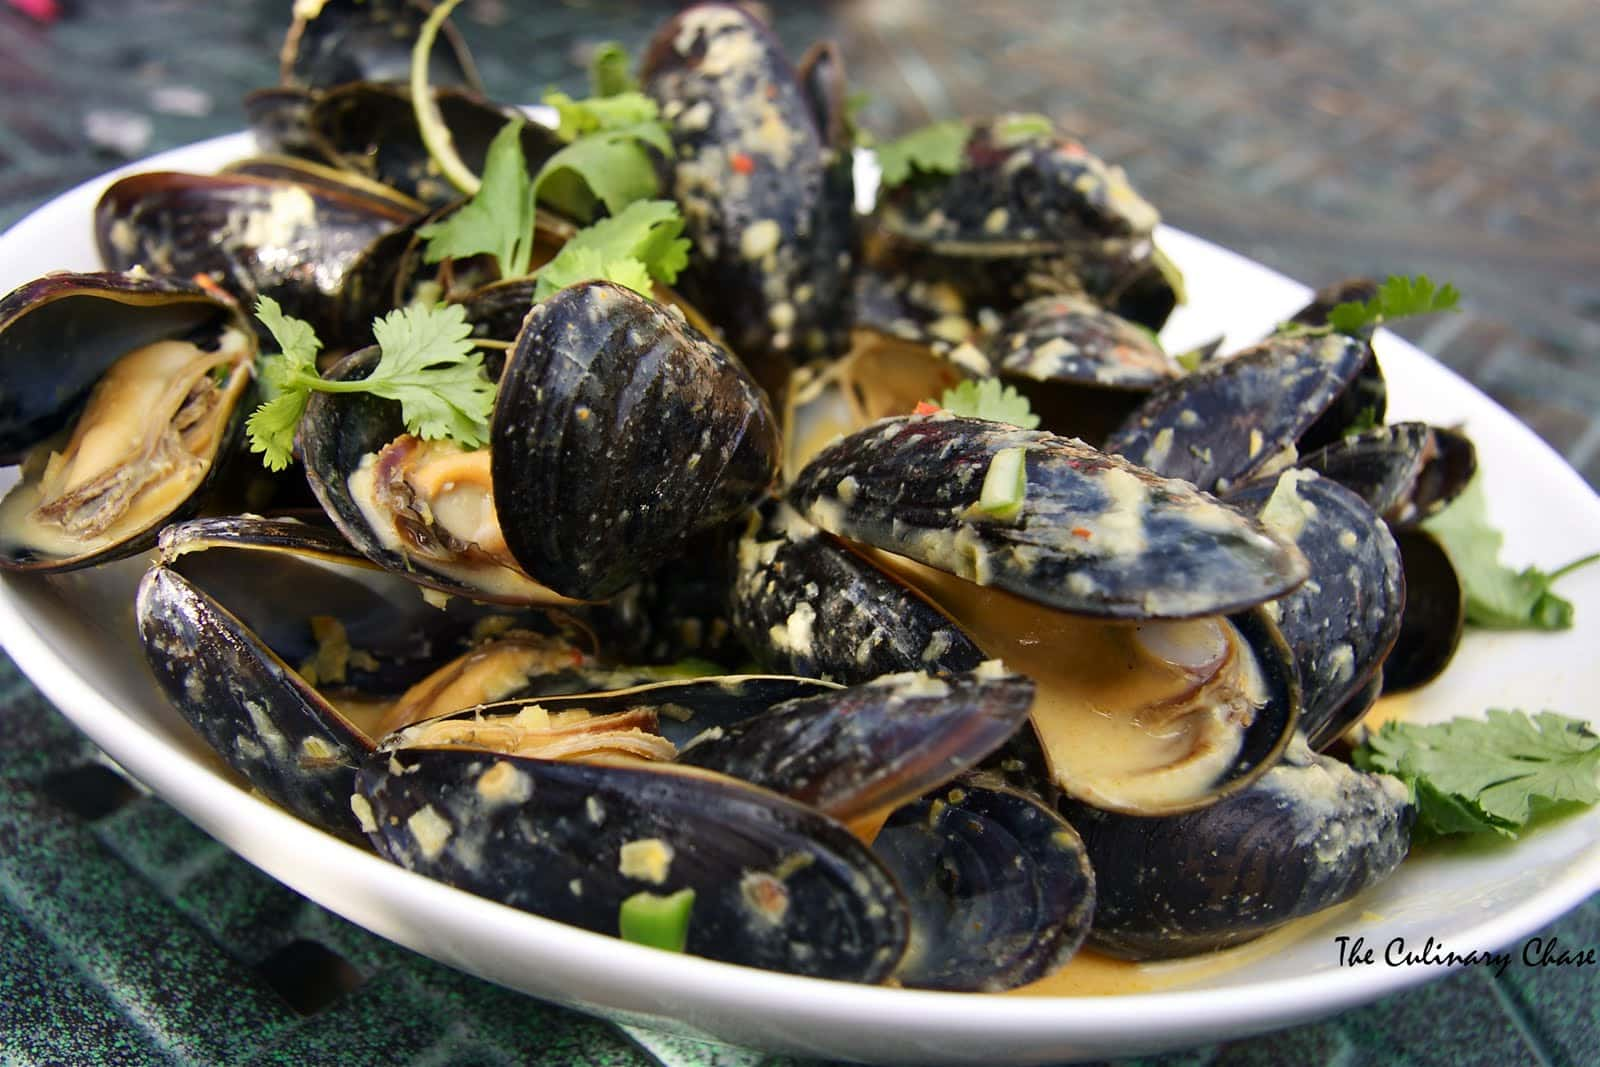 ... steamed mussels with coconut thai mussels indian curry steamed mussels